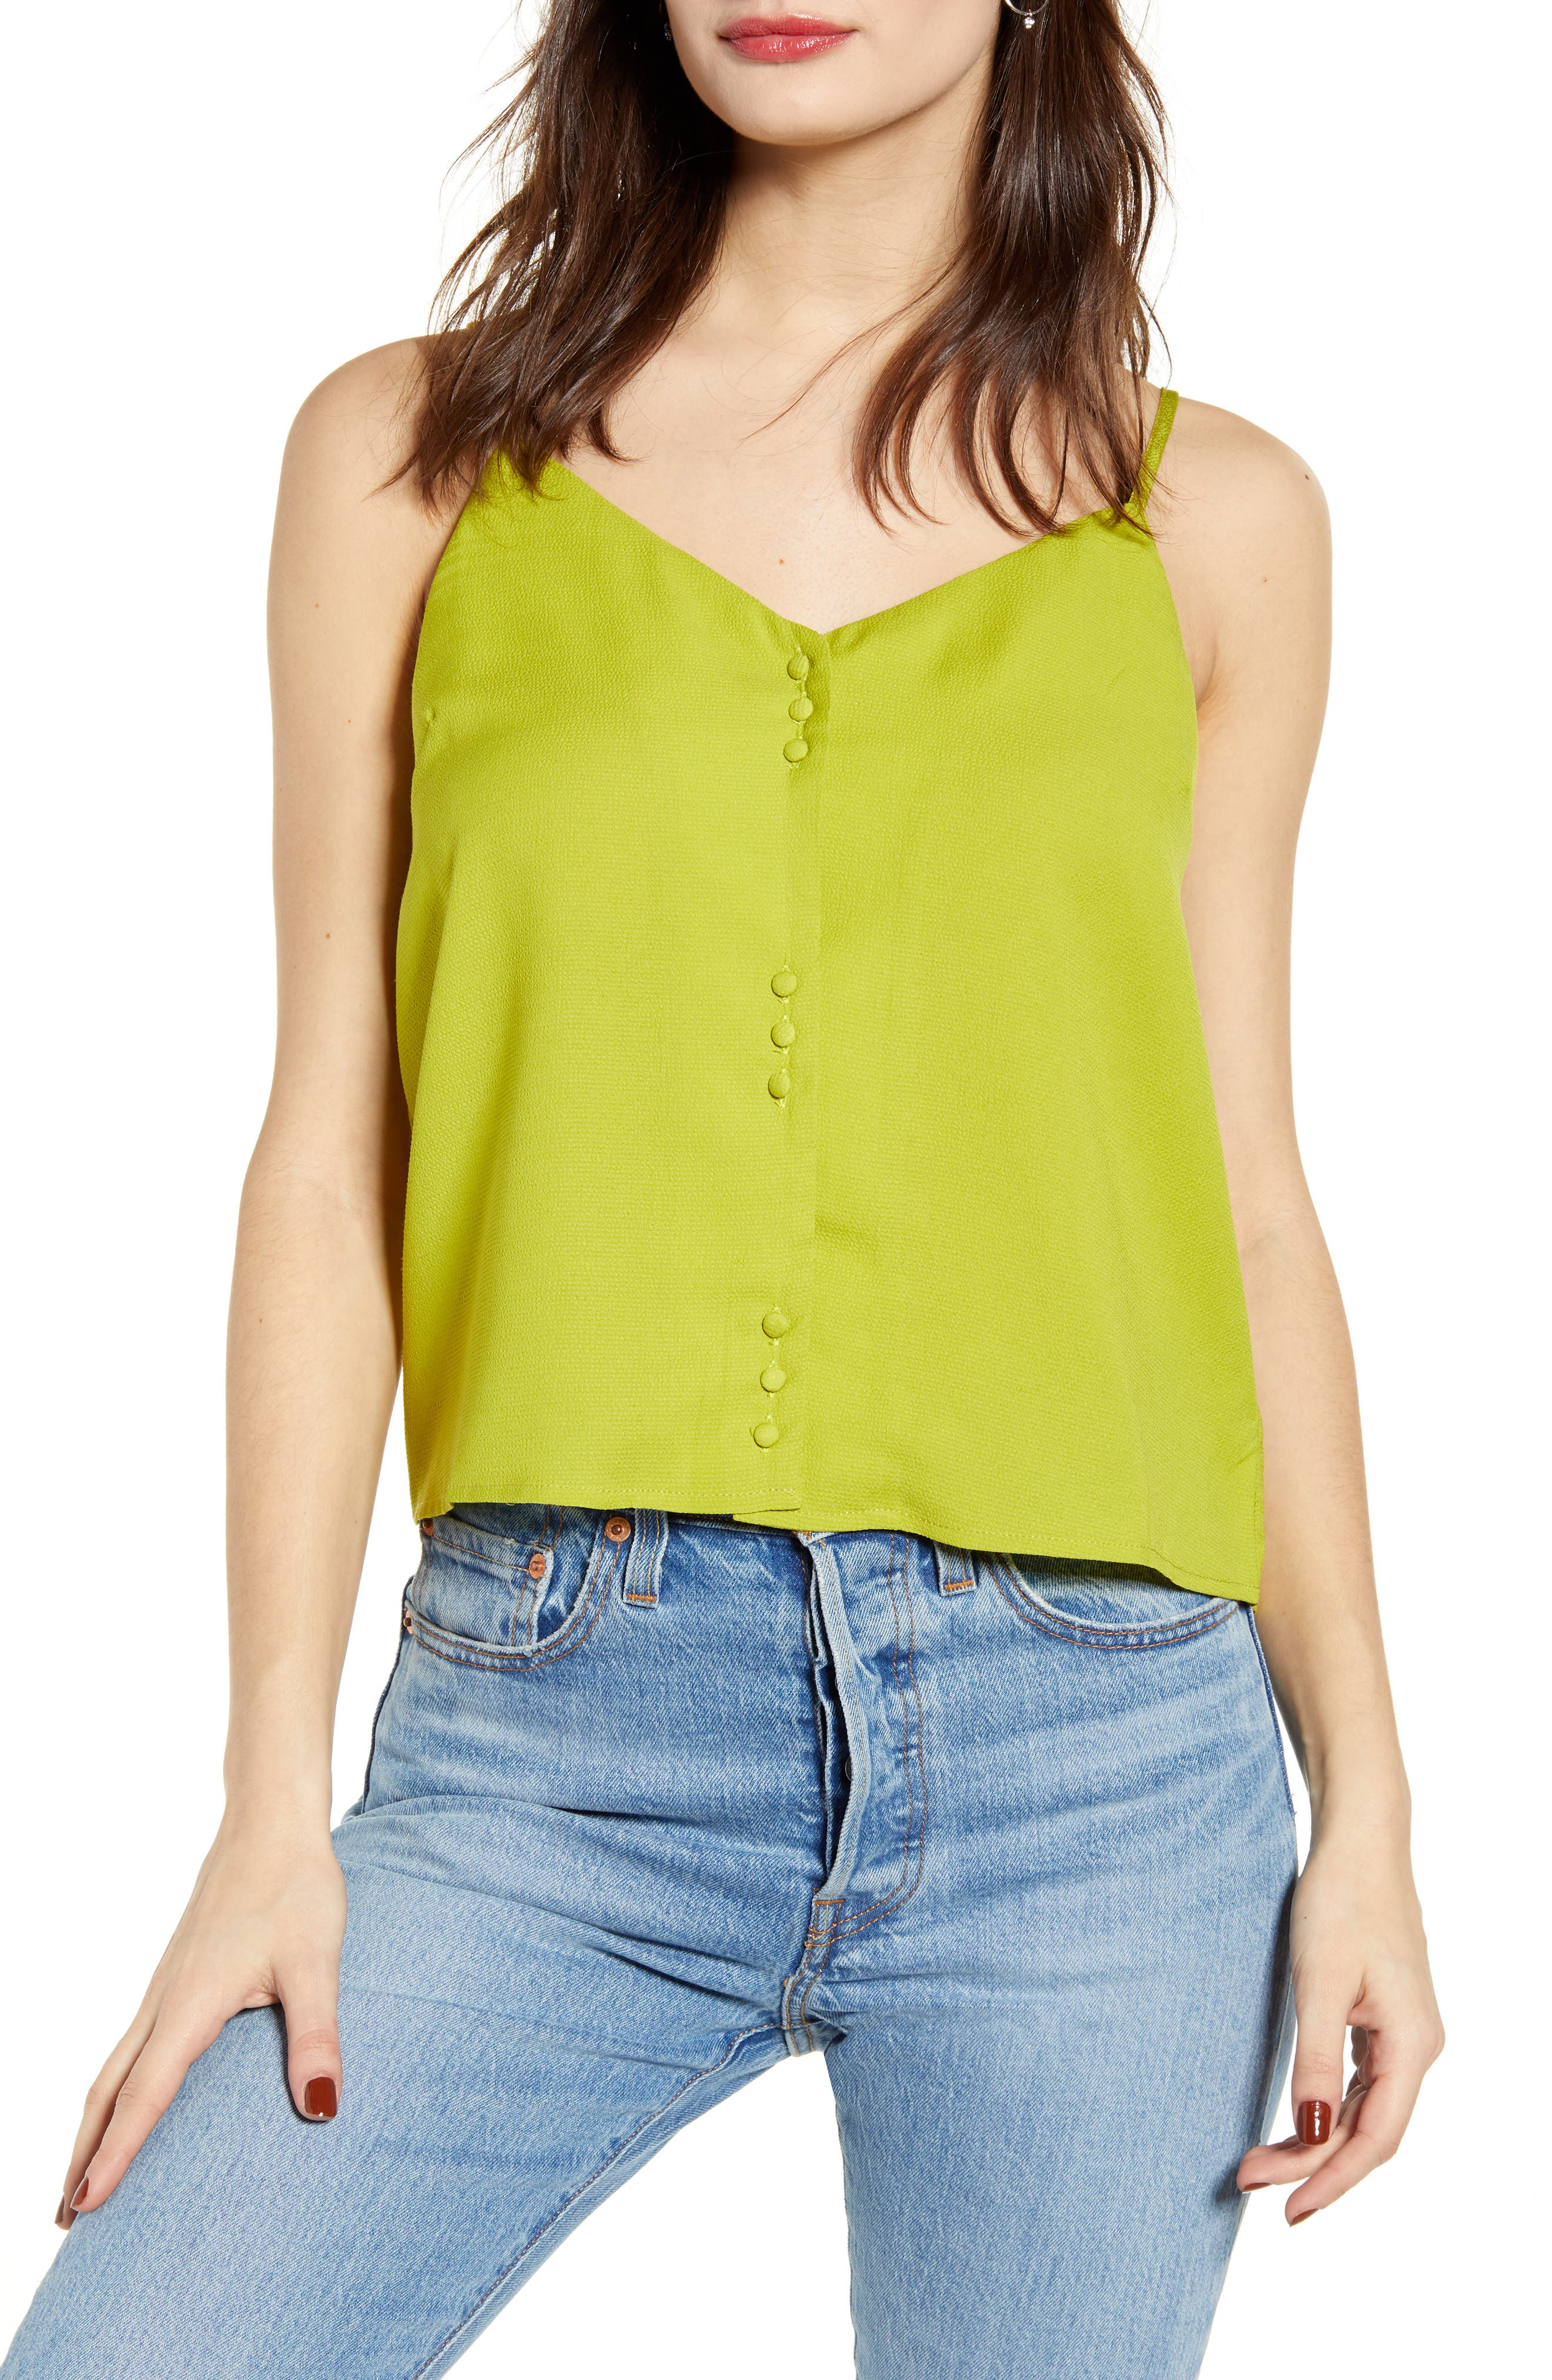 J.o.a. Button Front Camisole, Green